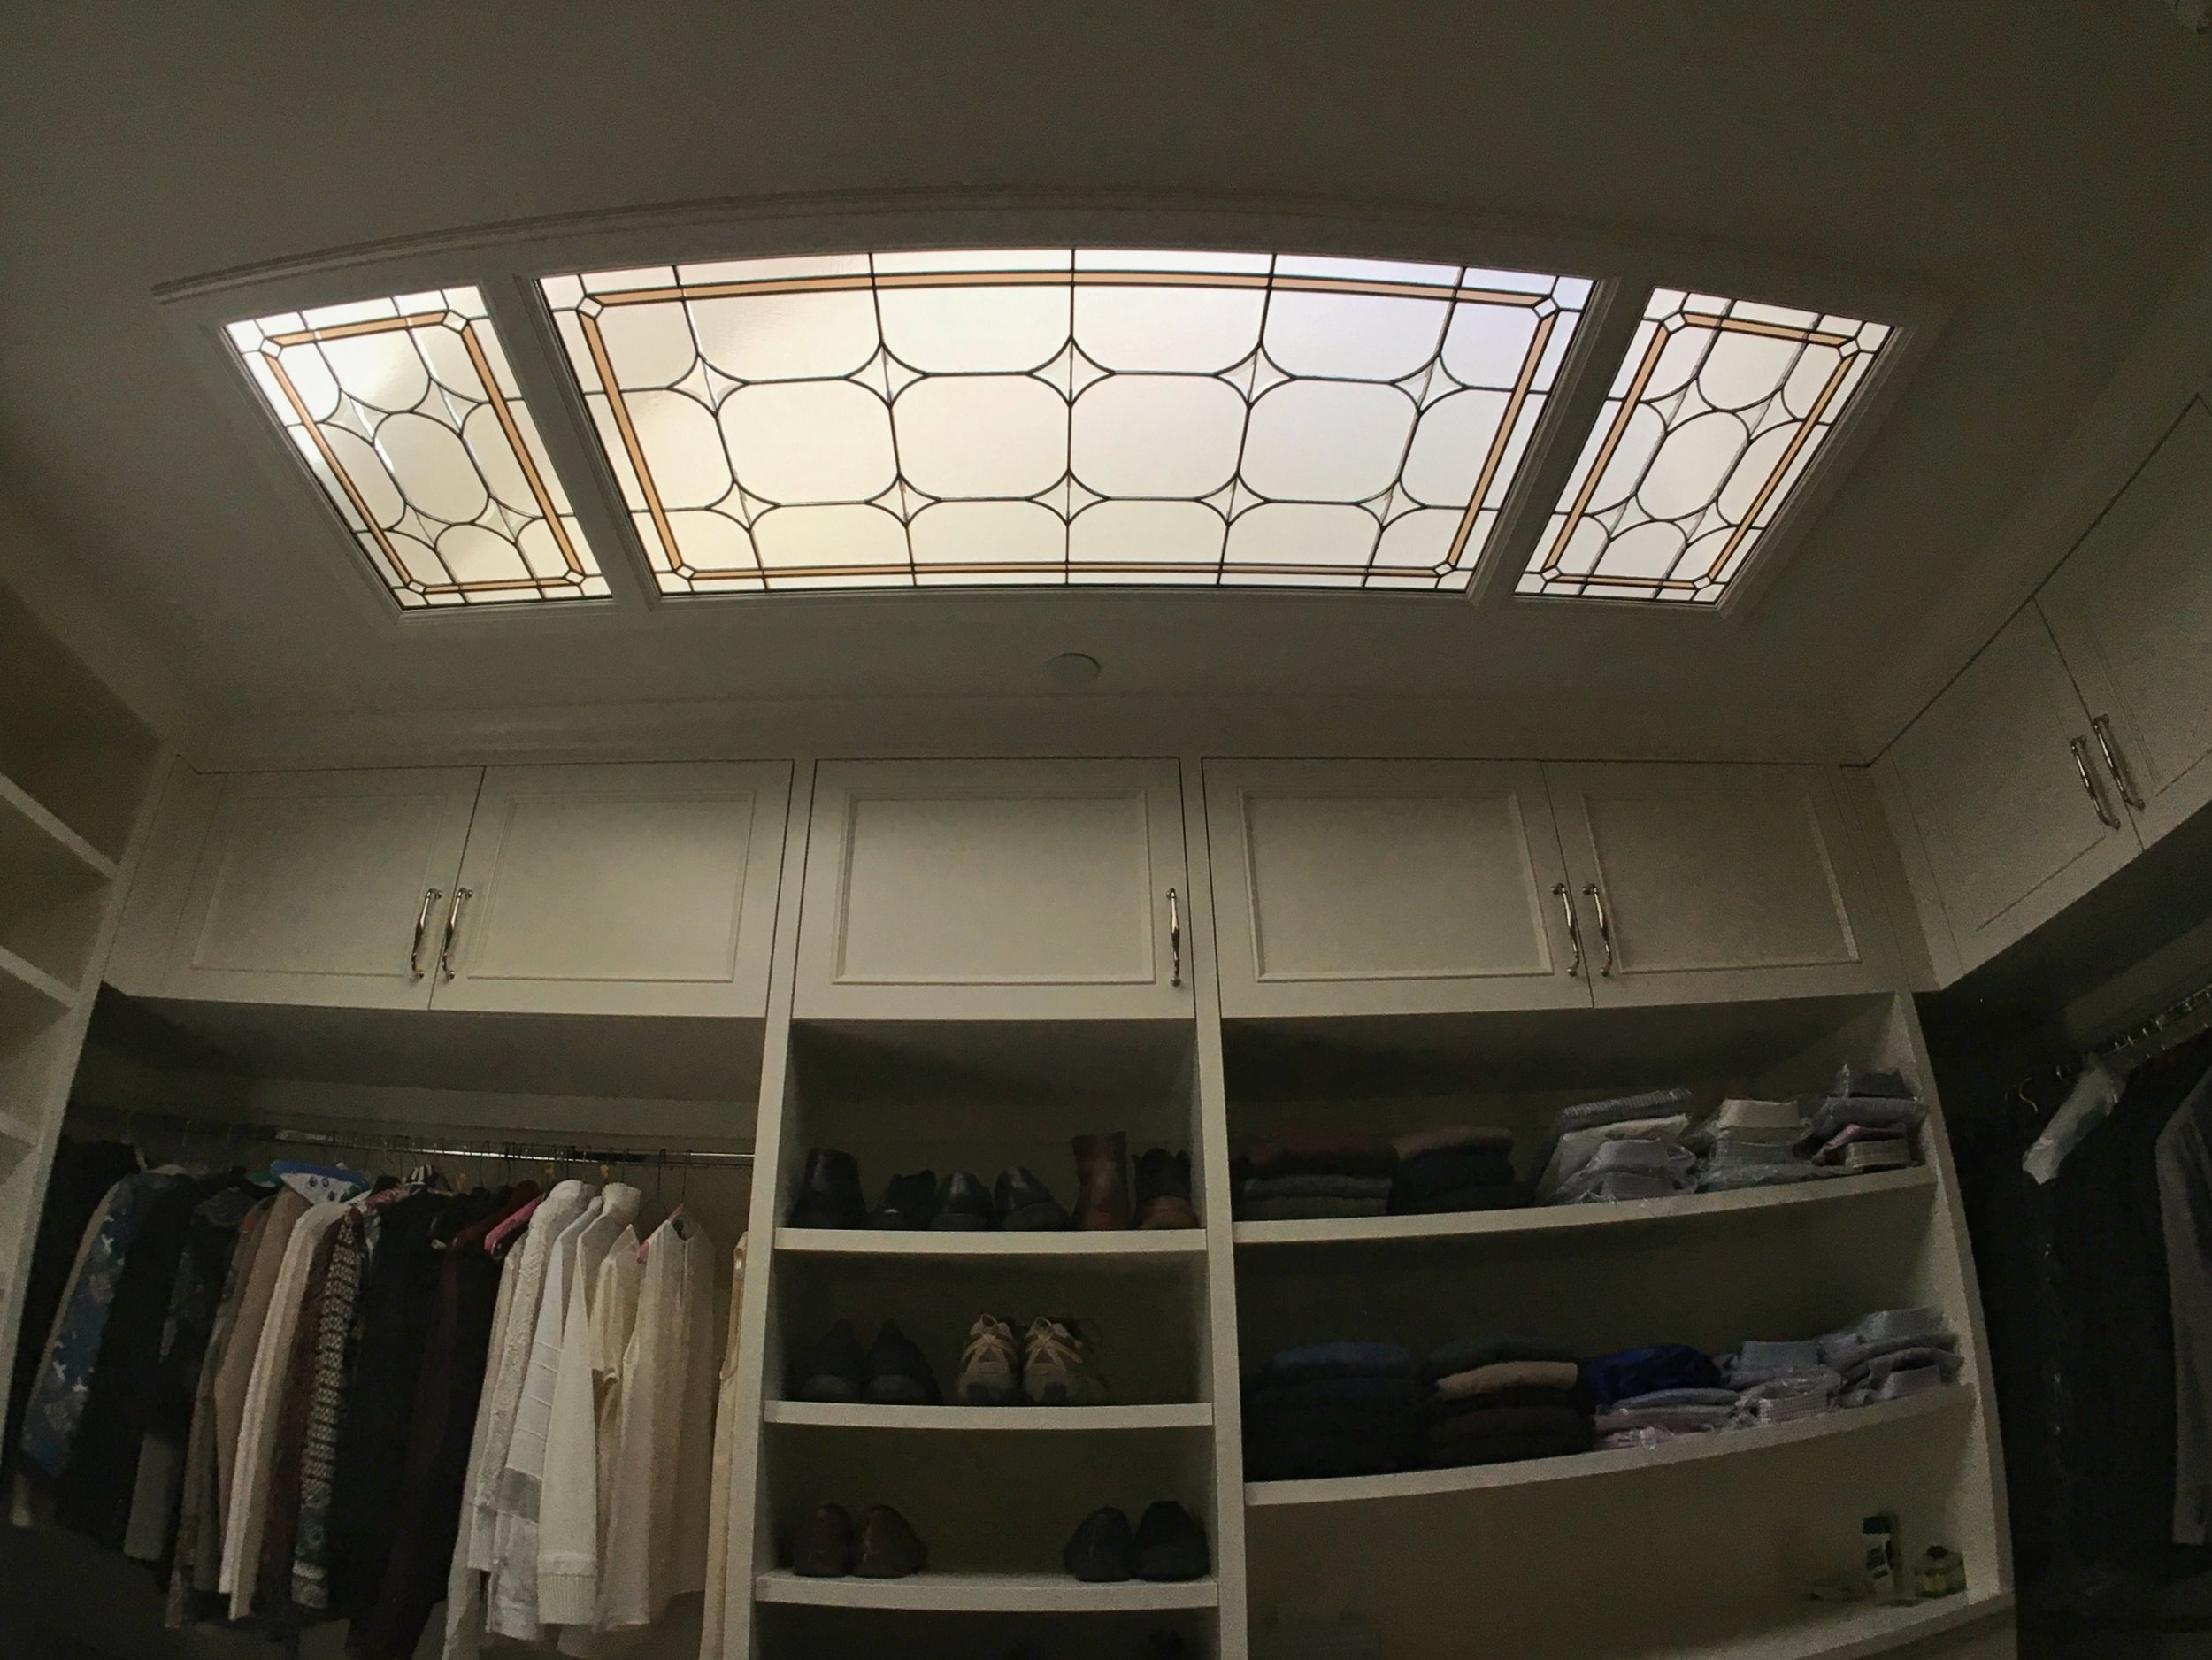 bevel leaded glass stained glass skylight walk in closet clear textured glass palo alto atherton menlo park san jose san francisco bay area legacy glass.JPG